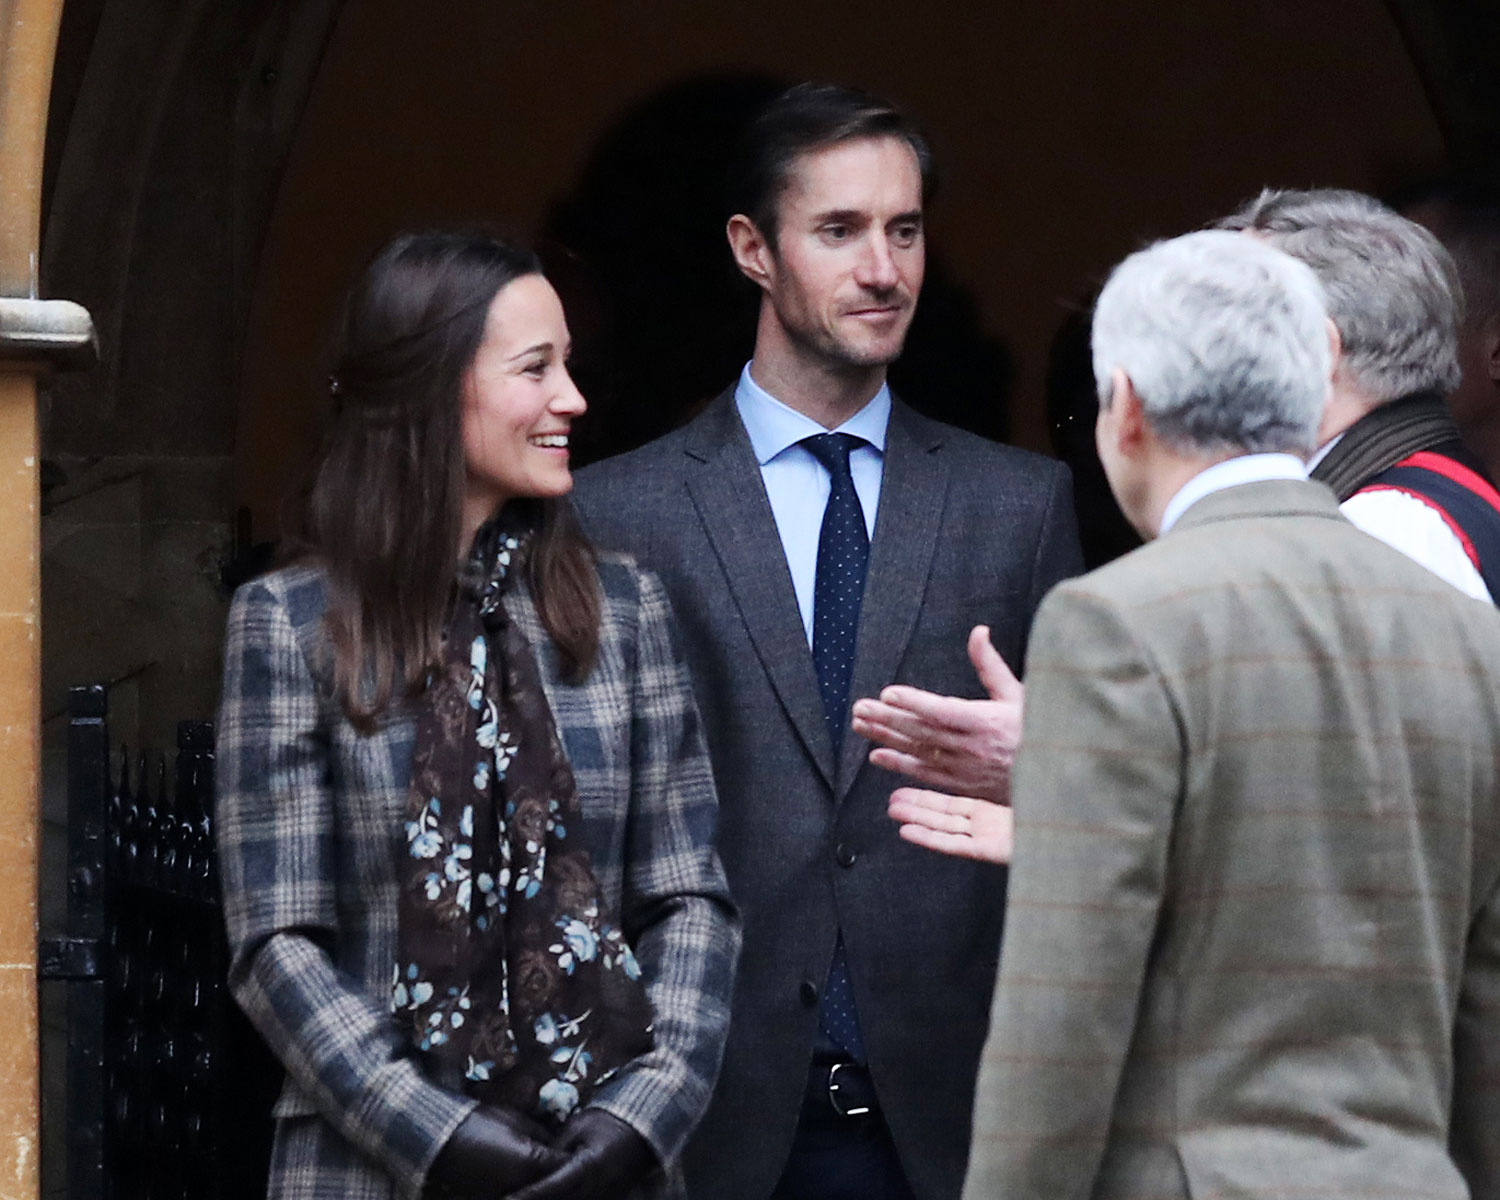 Pippa Middleton's Wedding Date Confirmed by Kensington Palace - photo#32